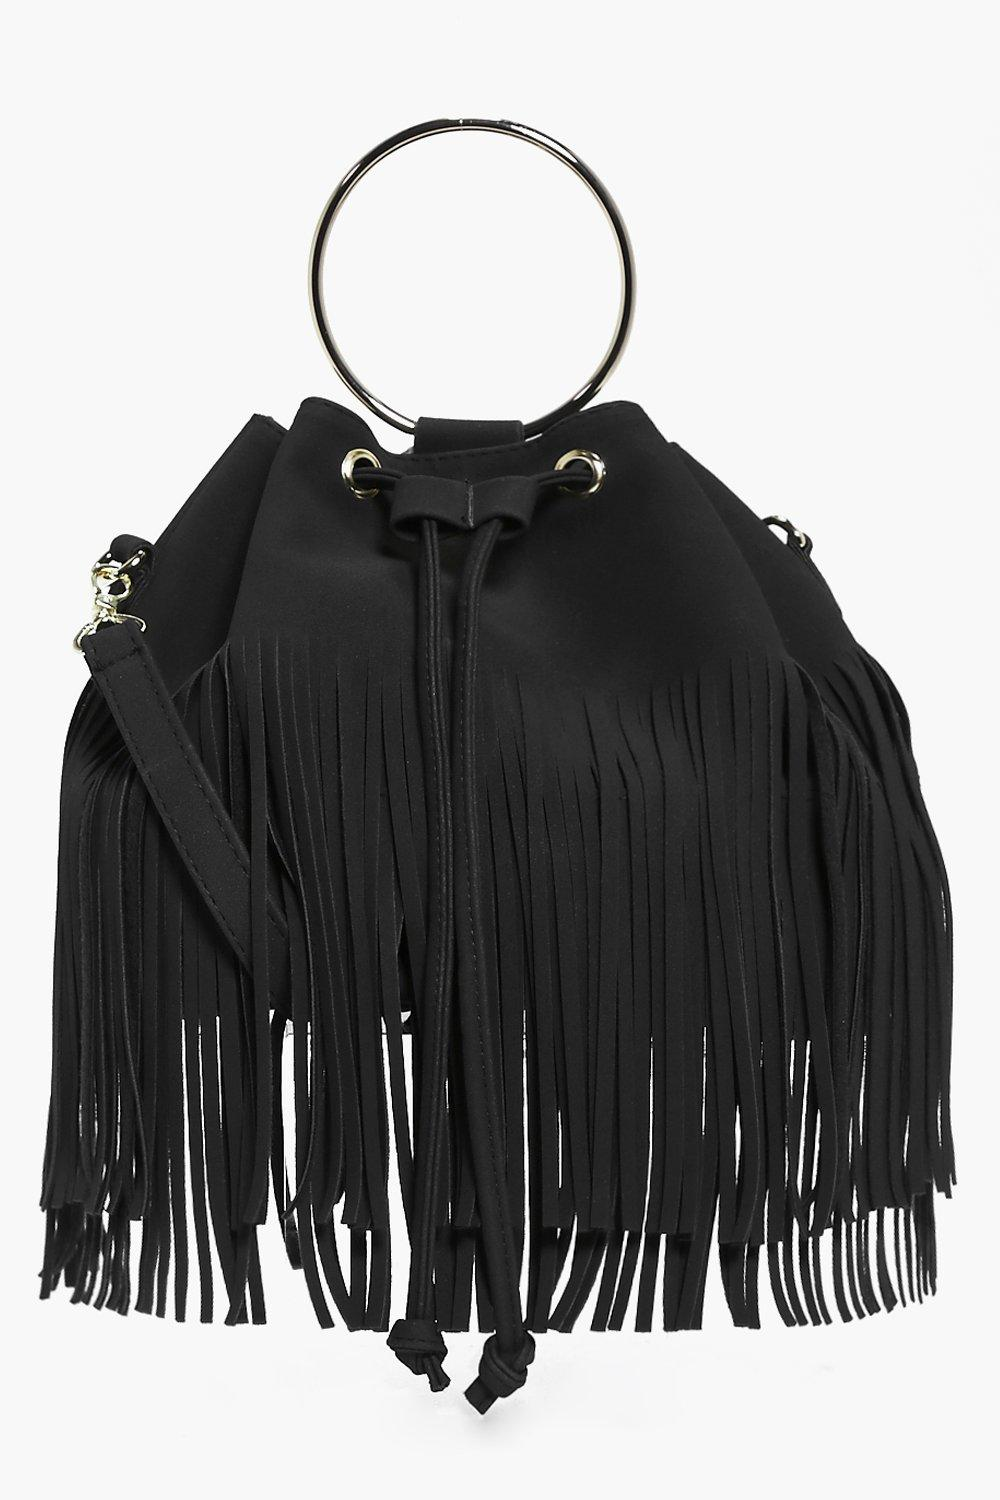 Fringed Duffle Bag With Circle Trim - black - Lena